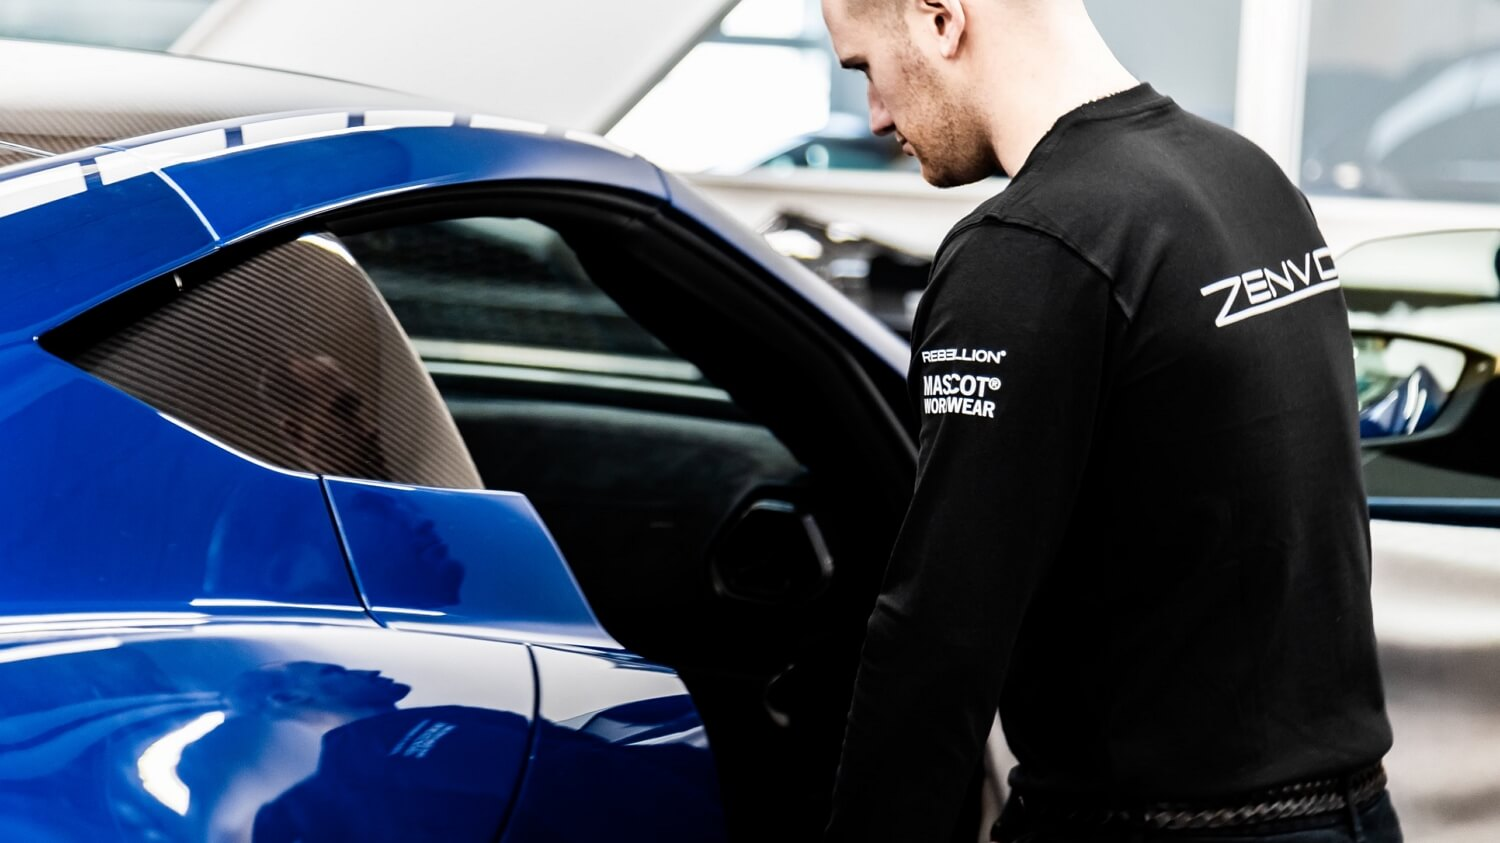 2019-Zenvo Automotive - MASCOT WORKWEAR - Zenvo technician